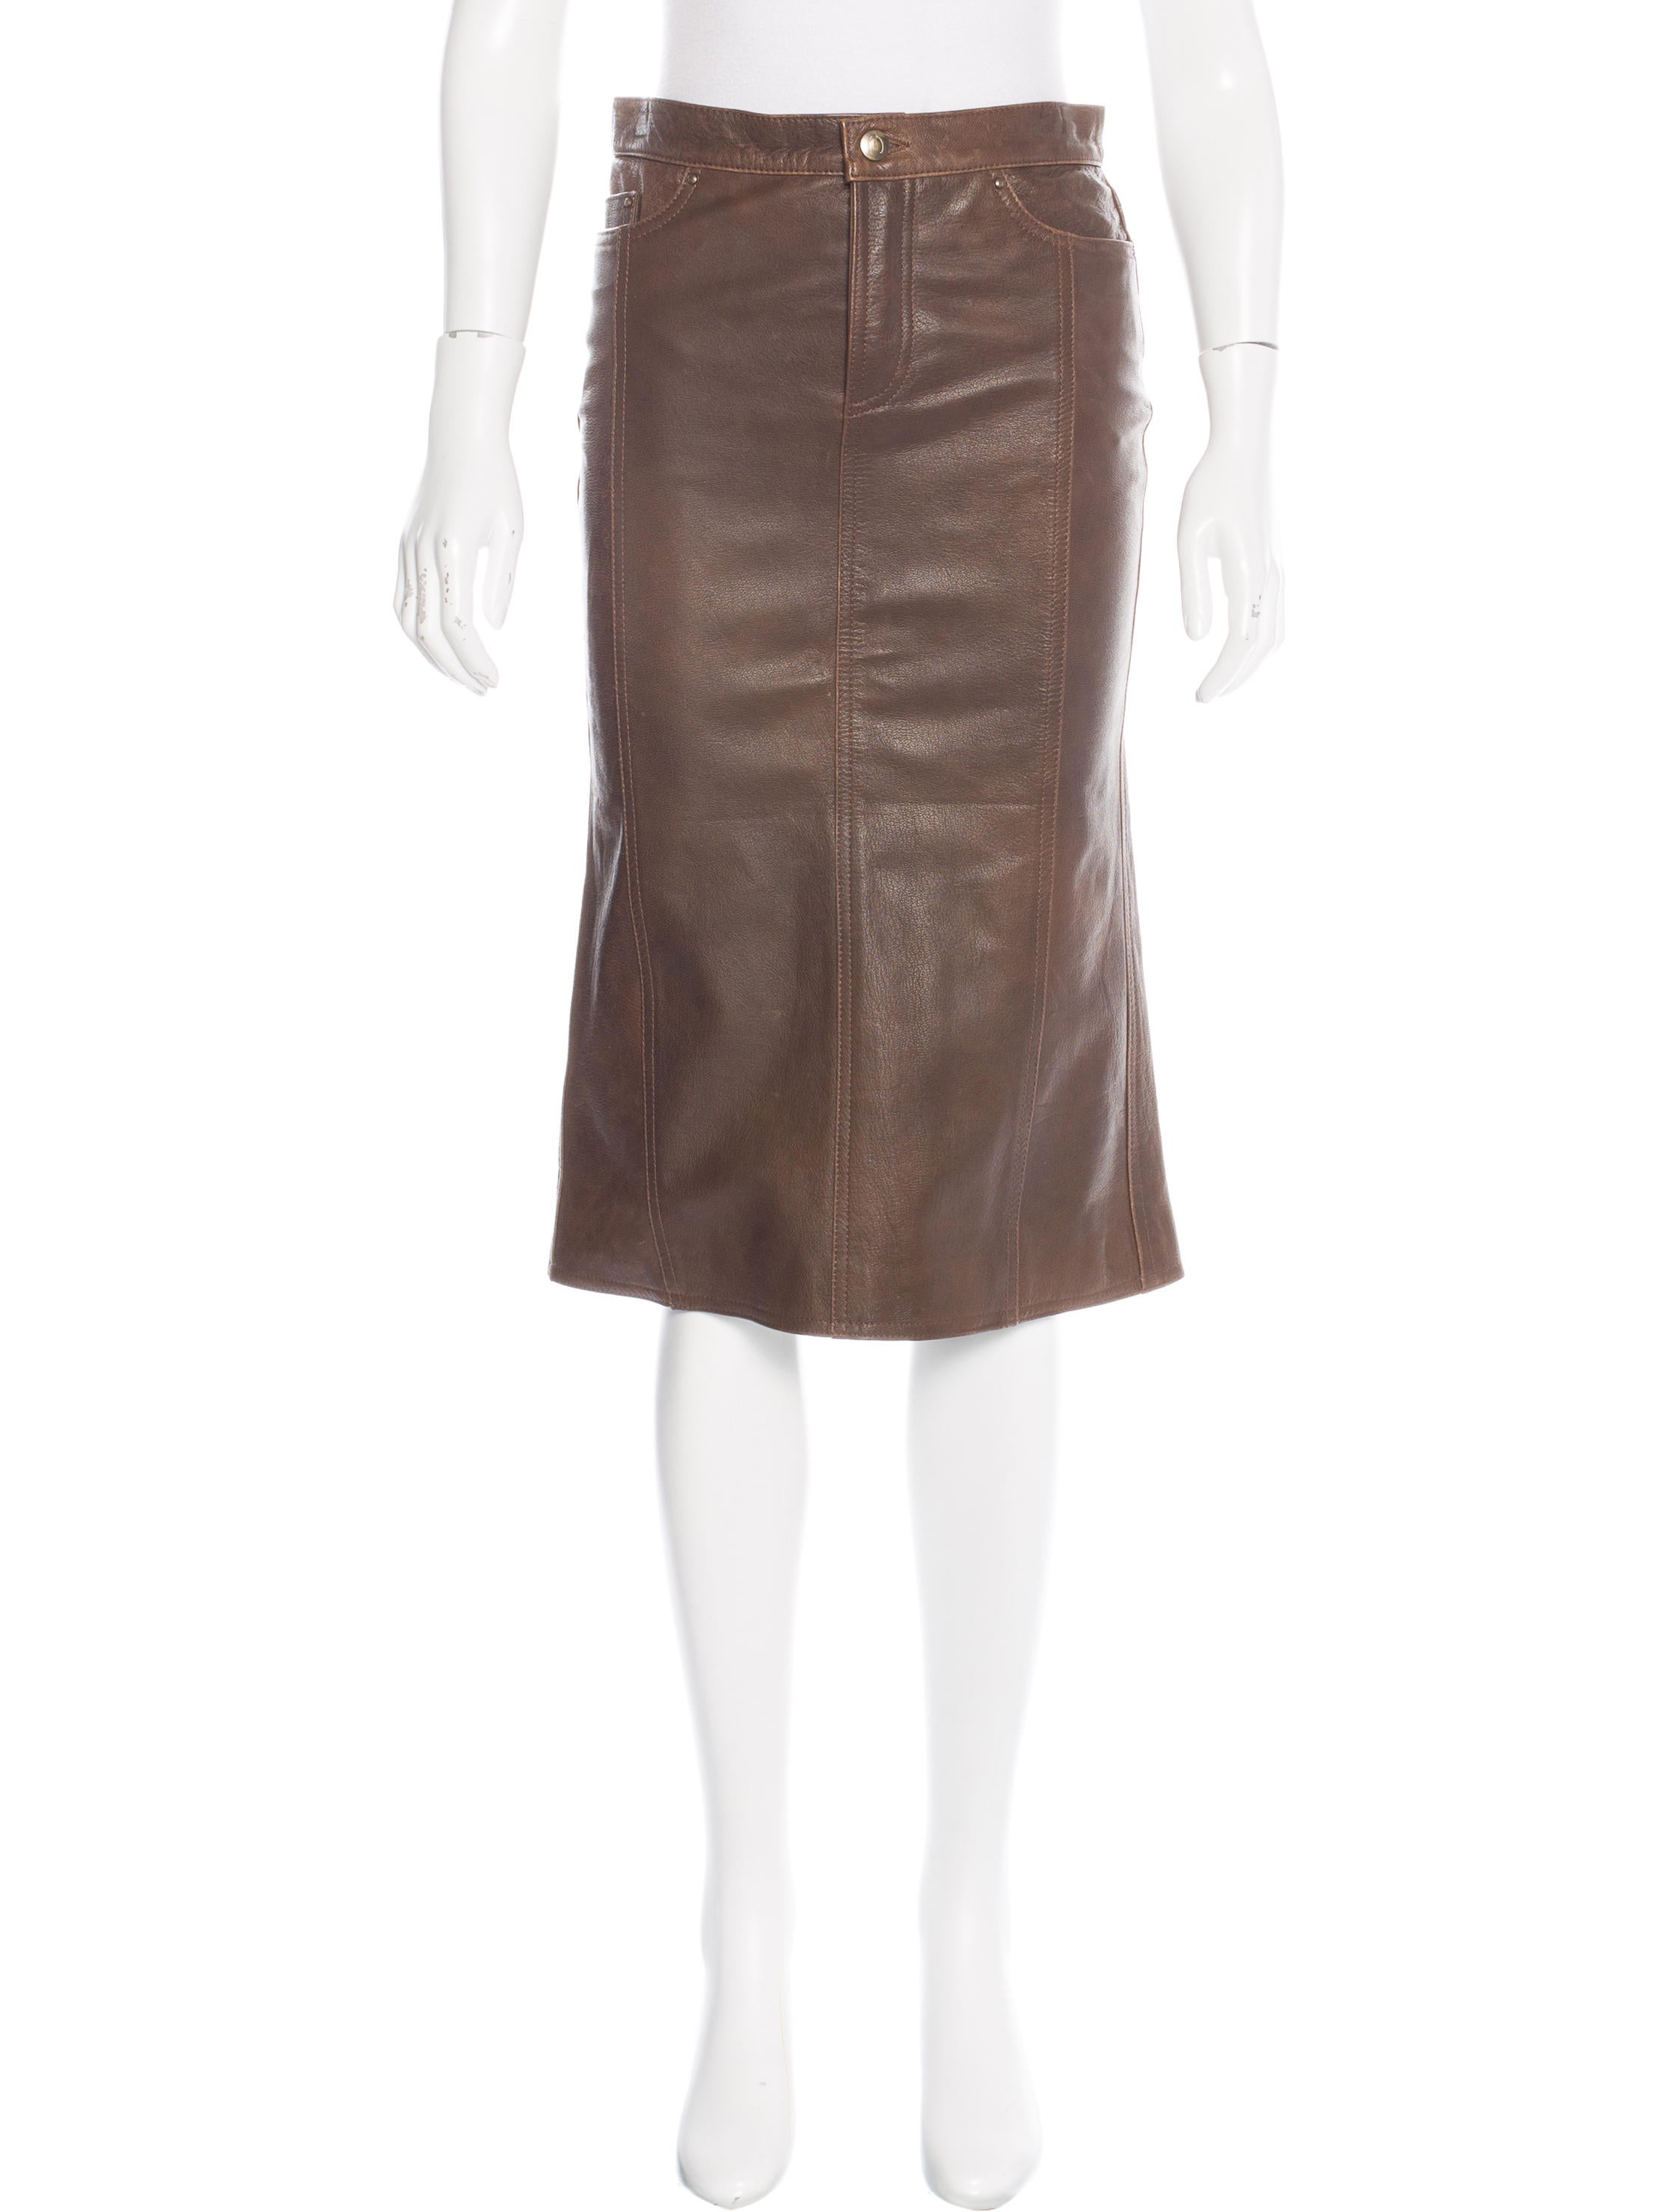 Just Cavalli Leather Knee-Length Skirt - Clothing - WJU26382 | The RealReal